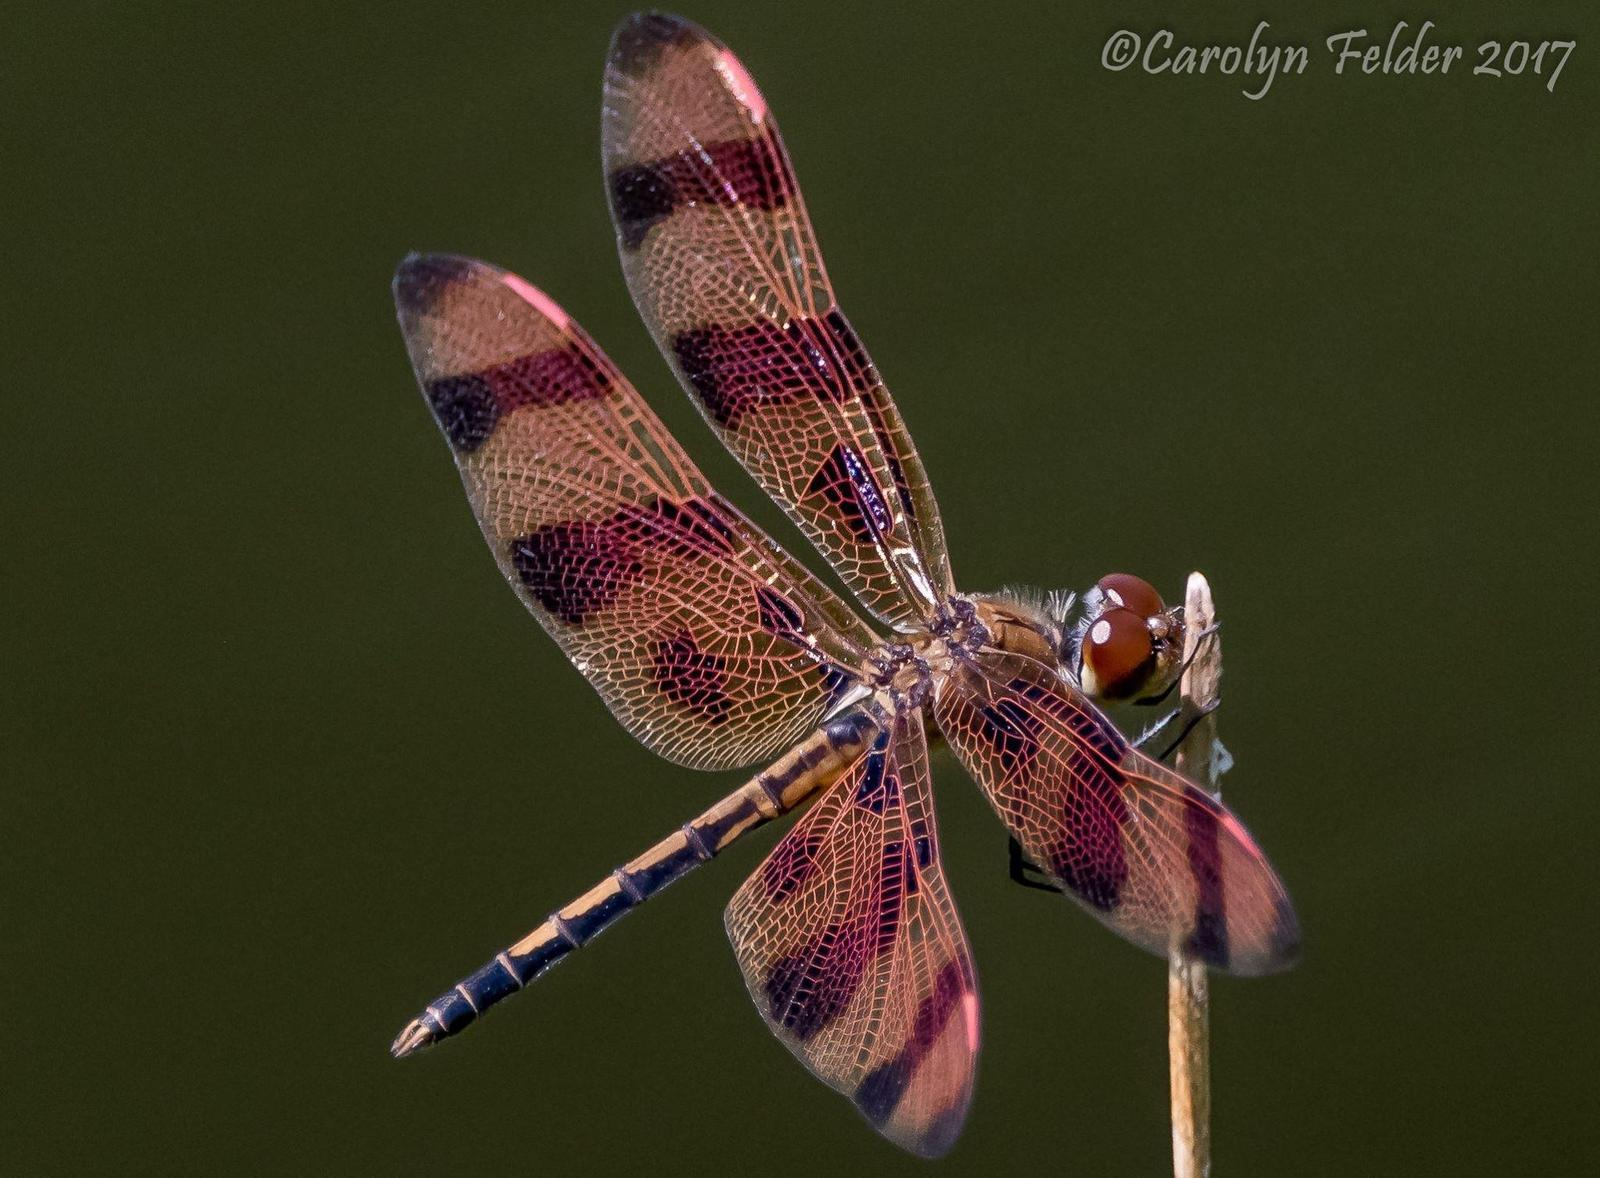 Halloween Pennant Photo by Carolyn Felder